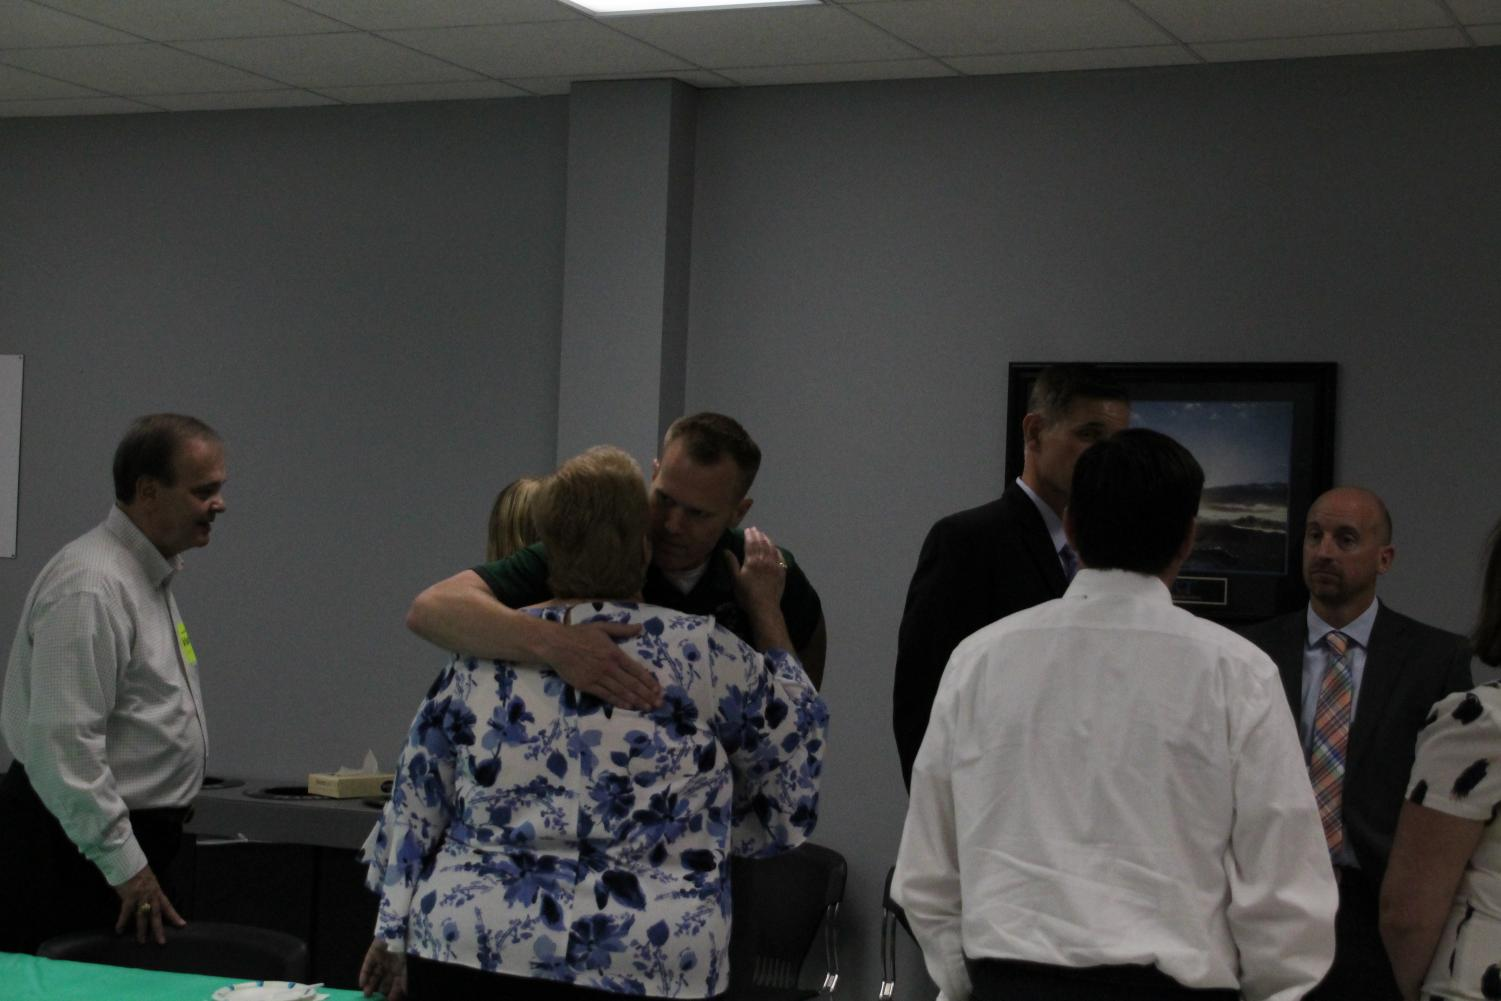 Dr.+Fitzgerald+embraces+an+attendee.+